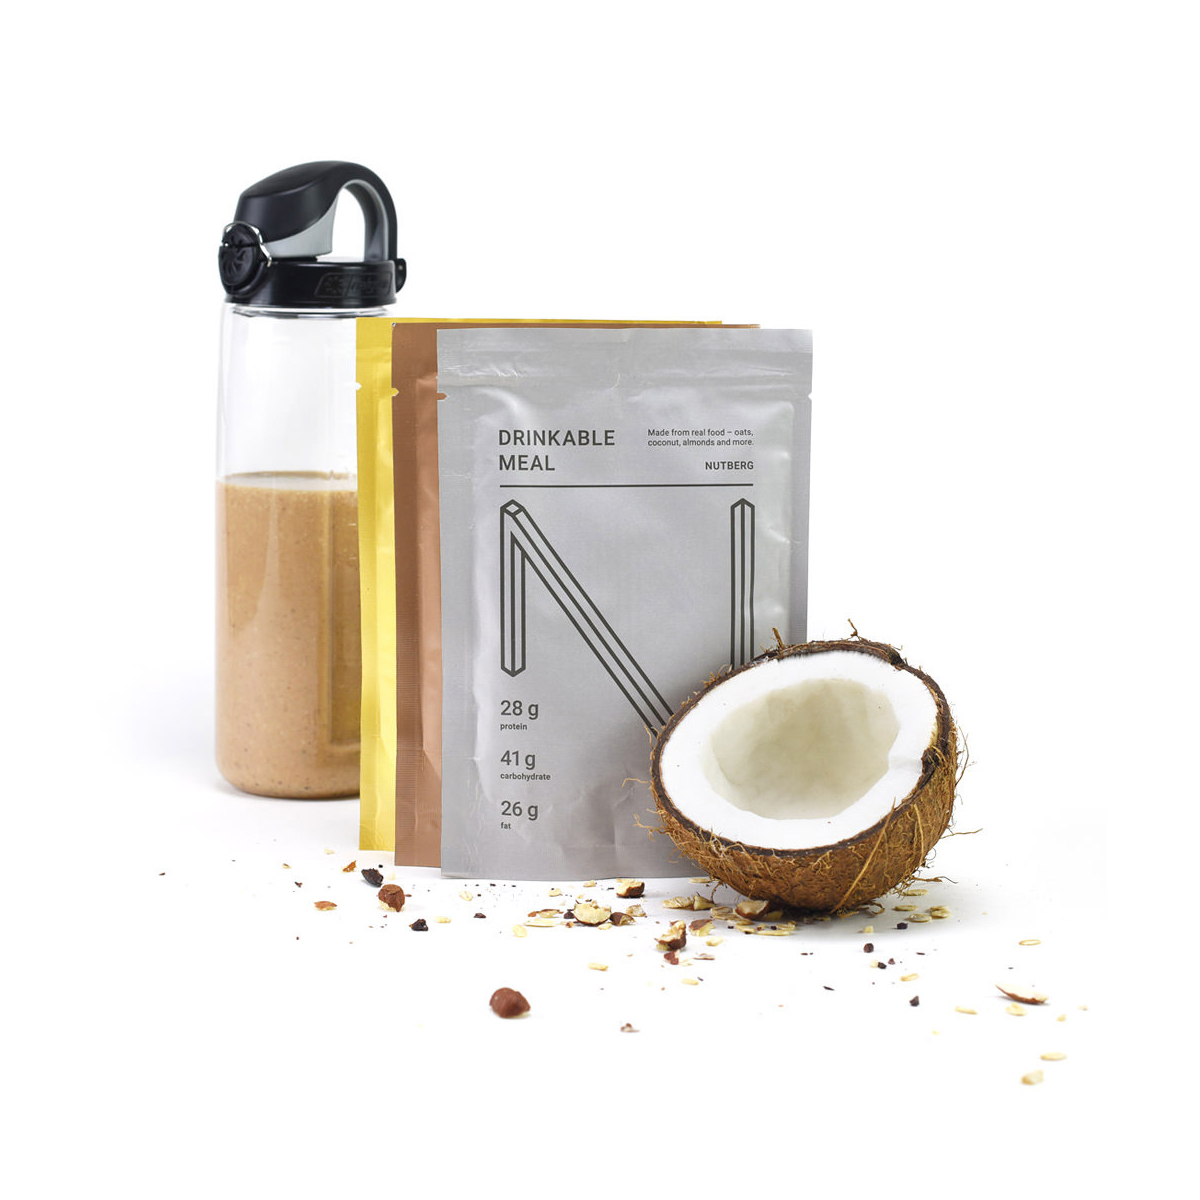 Nutberg drinkable meal with a water bottle and coconut beside the packet